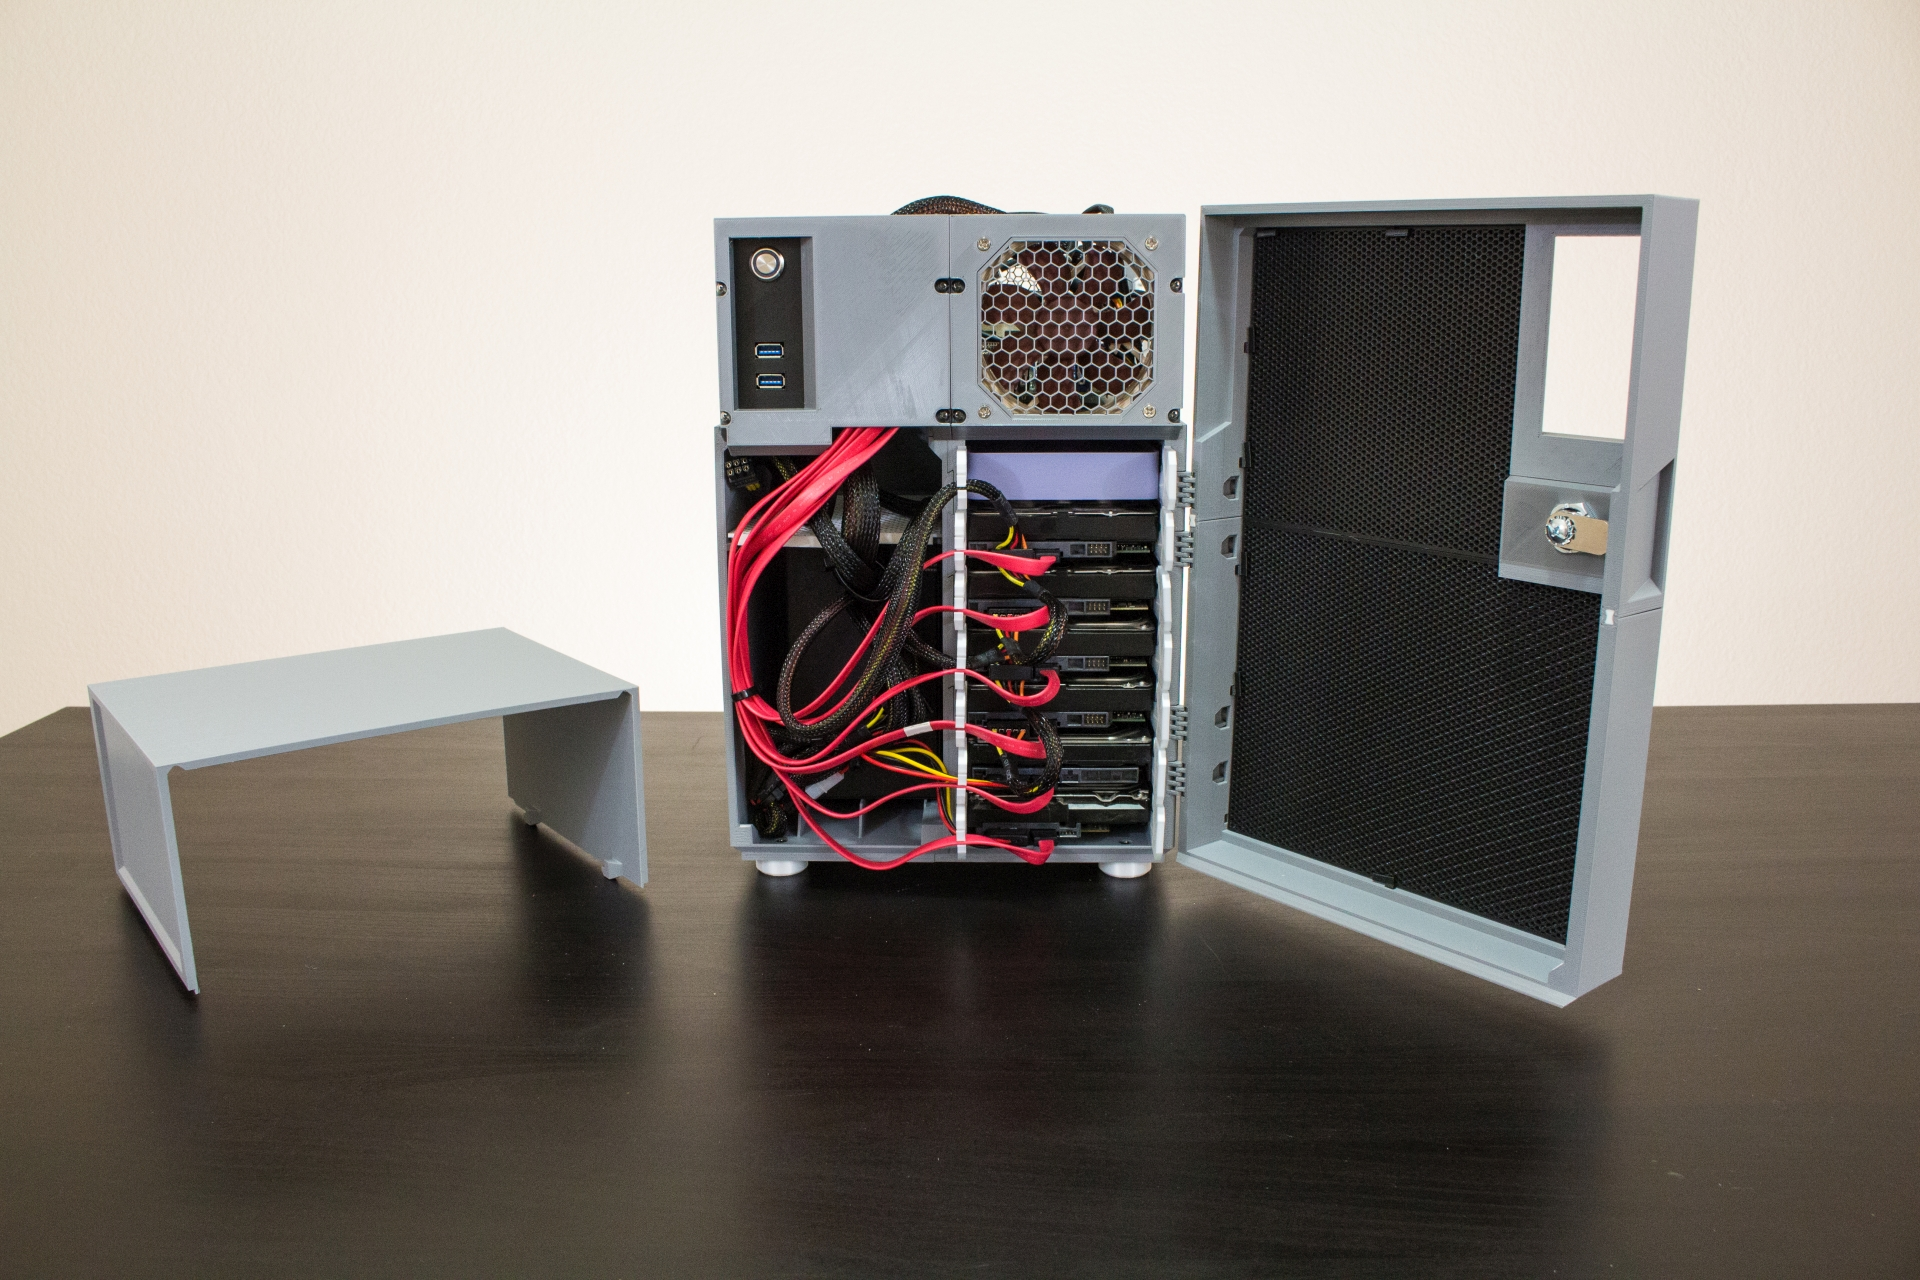 HDDs installed in cage with power and SATA #1